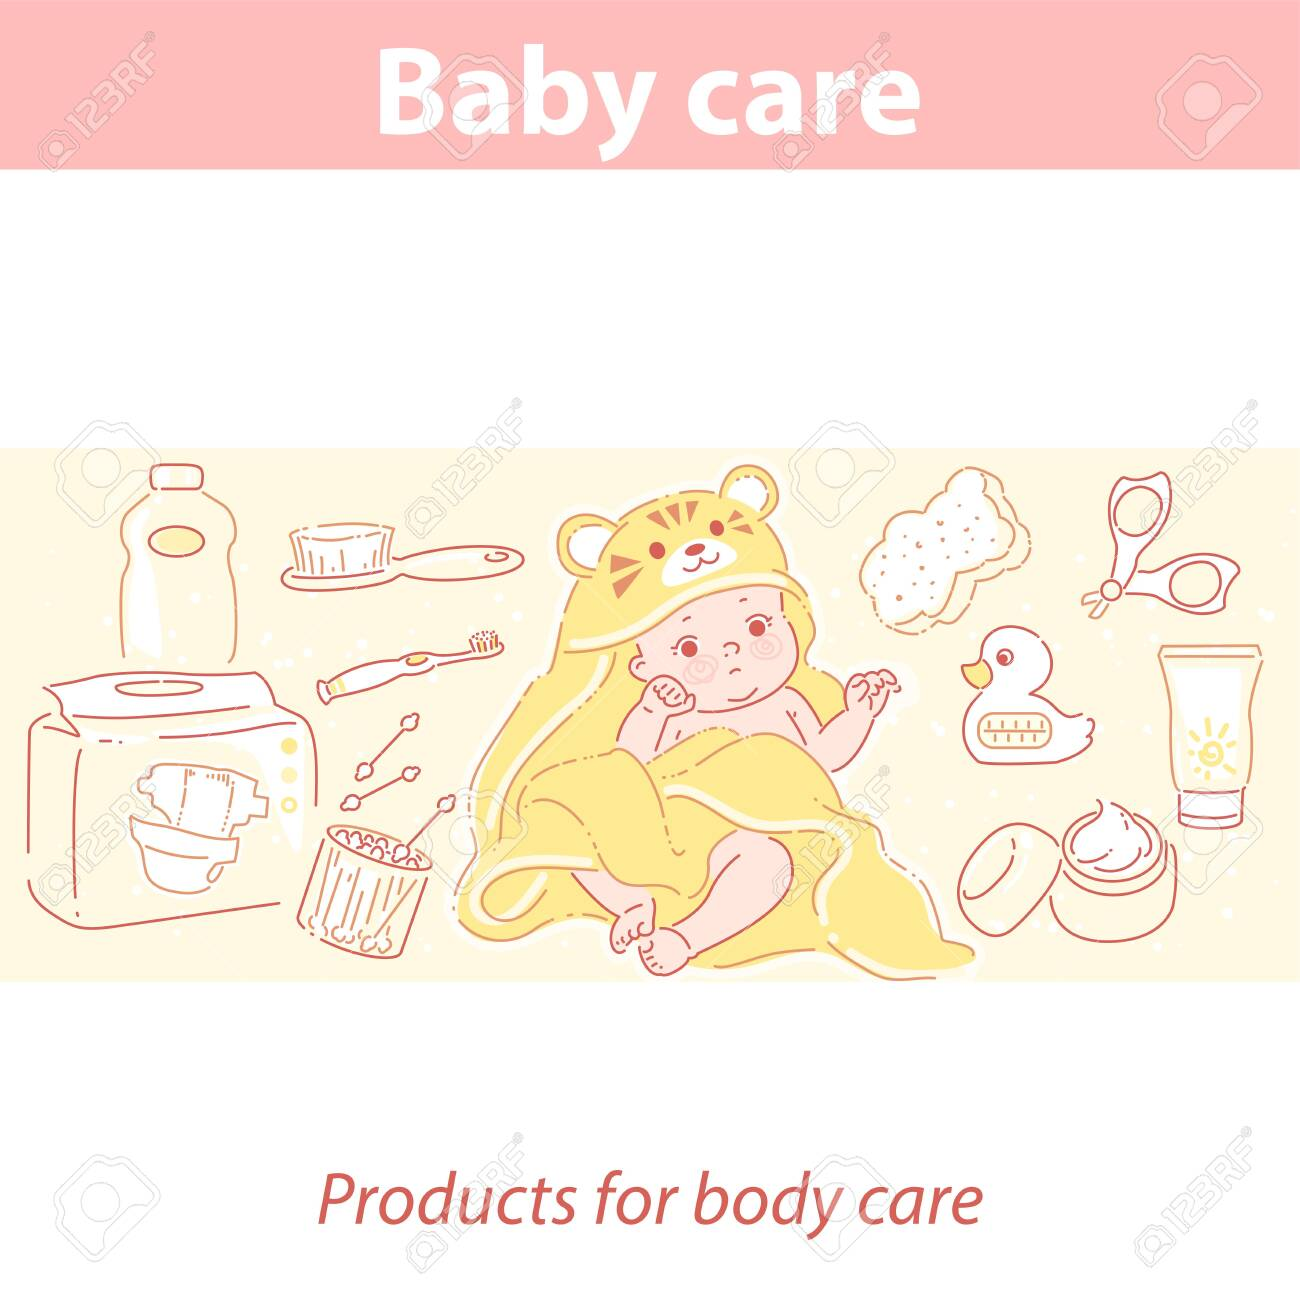 Cute little baby in tiger towel after bath. - 156413475